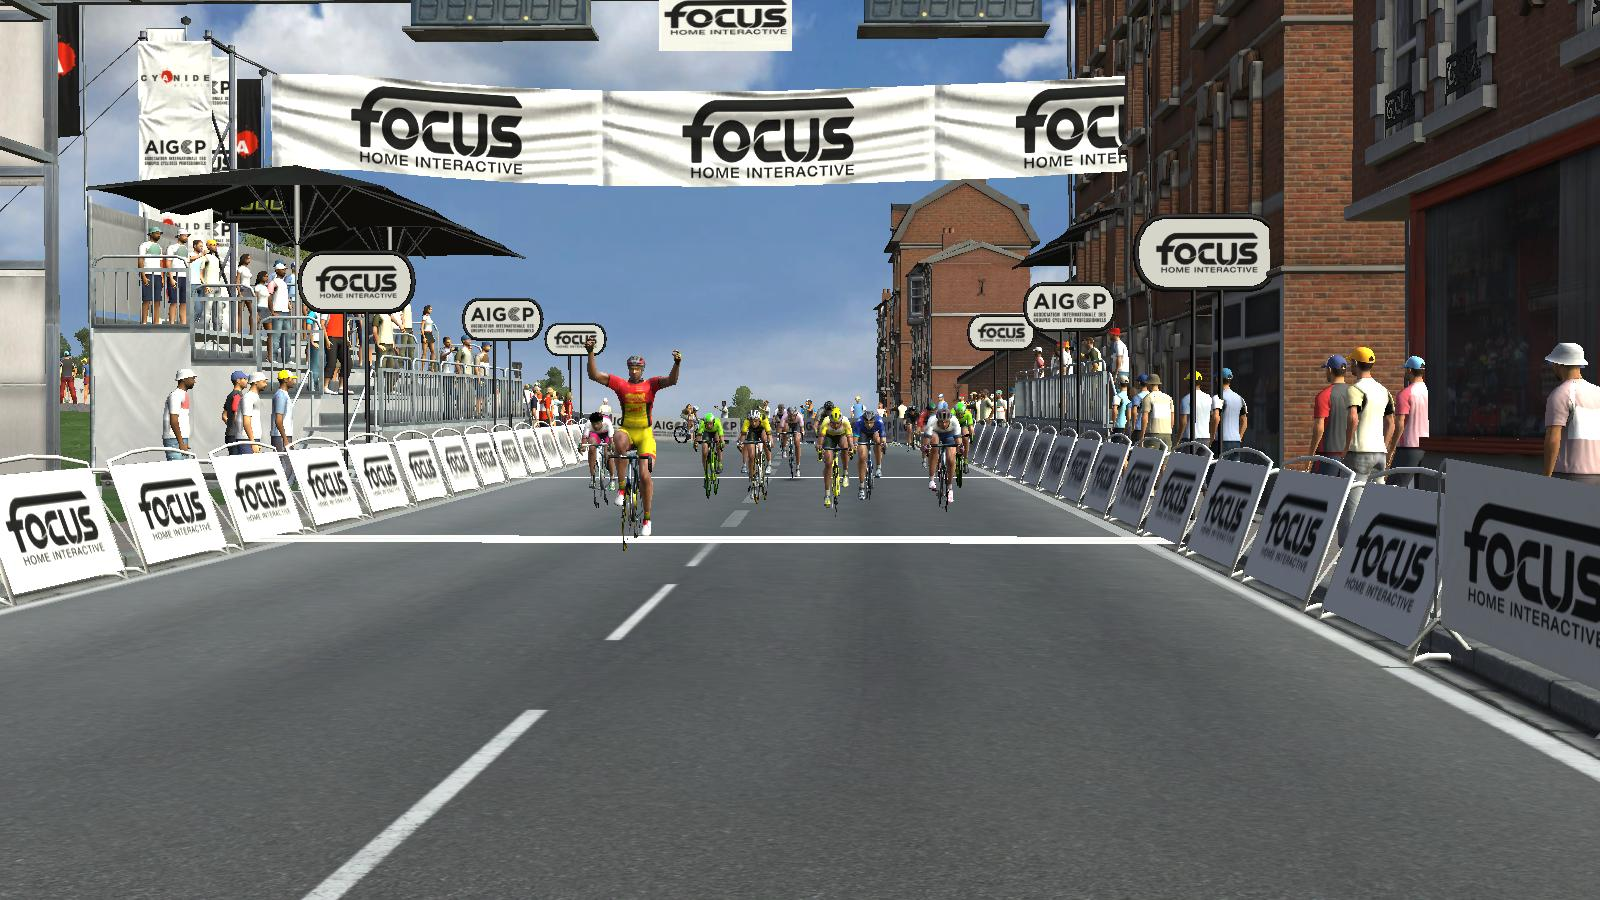 pcmdaily.com/images/mg/2019/Races/PTHC/Rheden/43.jpg